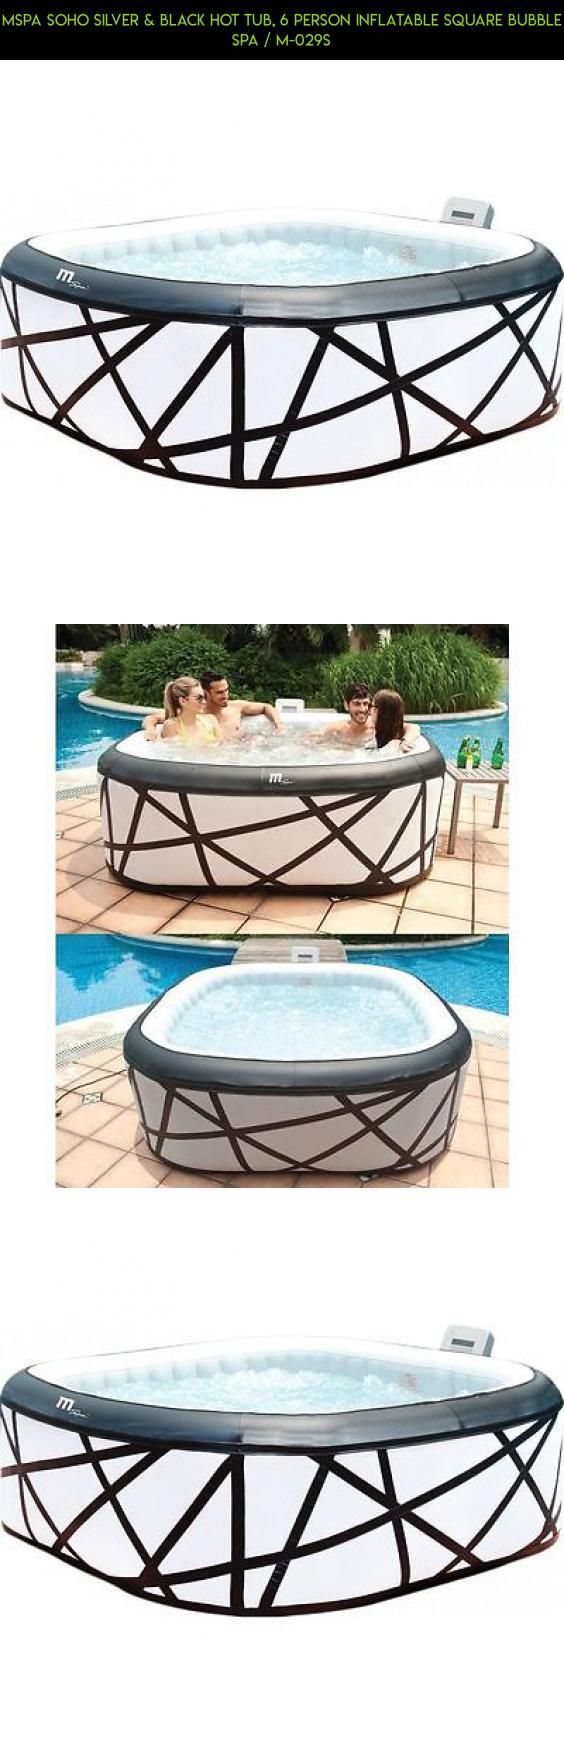 MSpa Soho Silver & Black Hot Tub, 6 Person Inflatable Square Bubble Spa / M-029S #drone #square #hot #fpv #tech #camera #kit #tubs #products #parts #shopping #inflatable #gadgets #plans #technology #racing